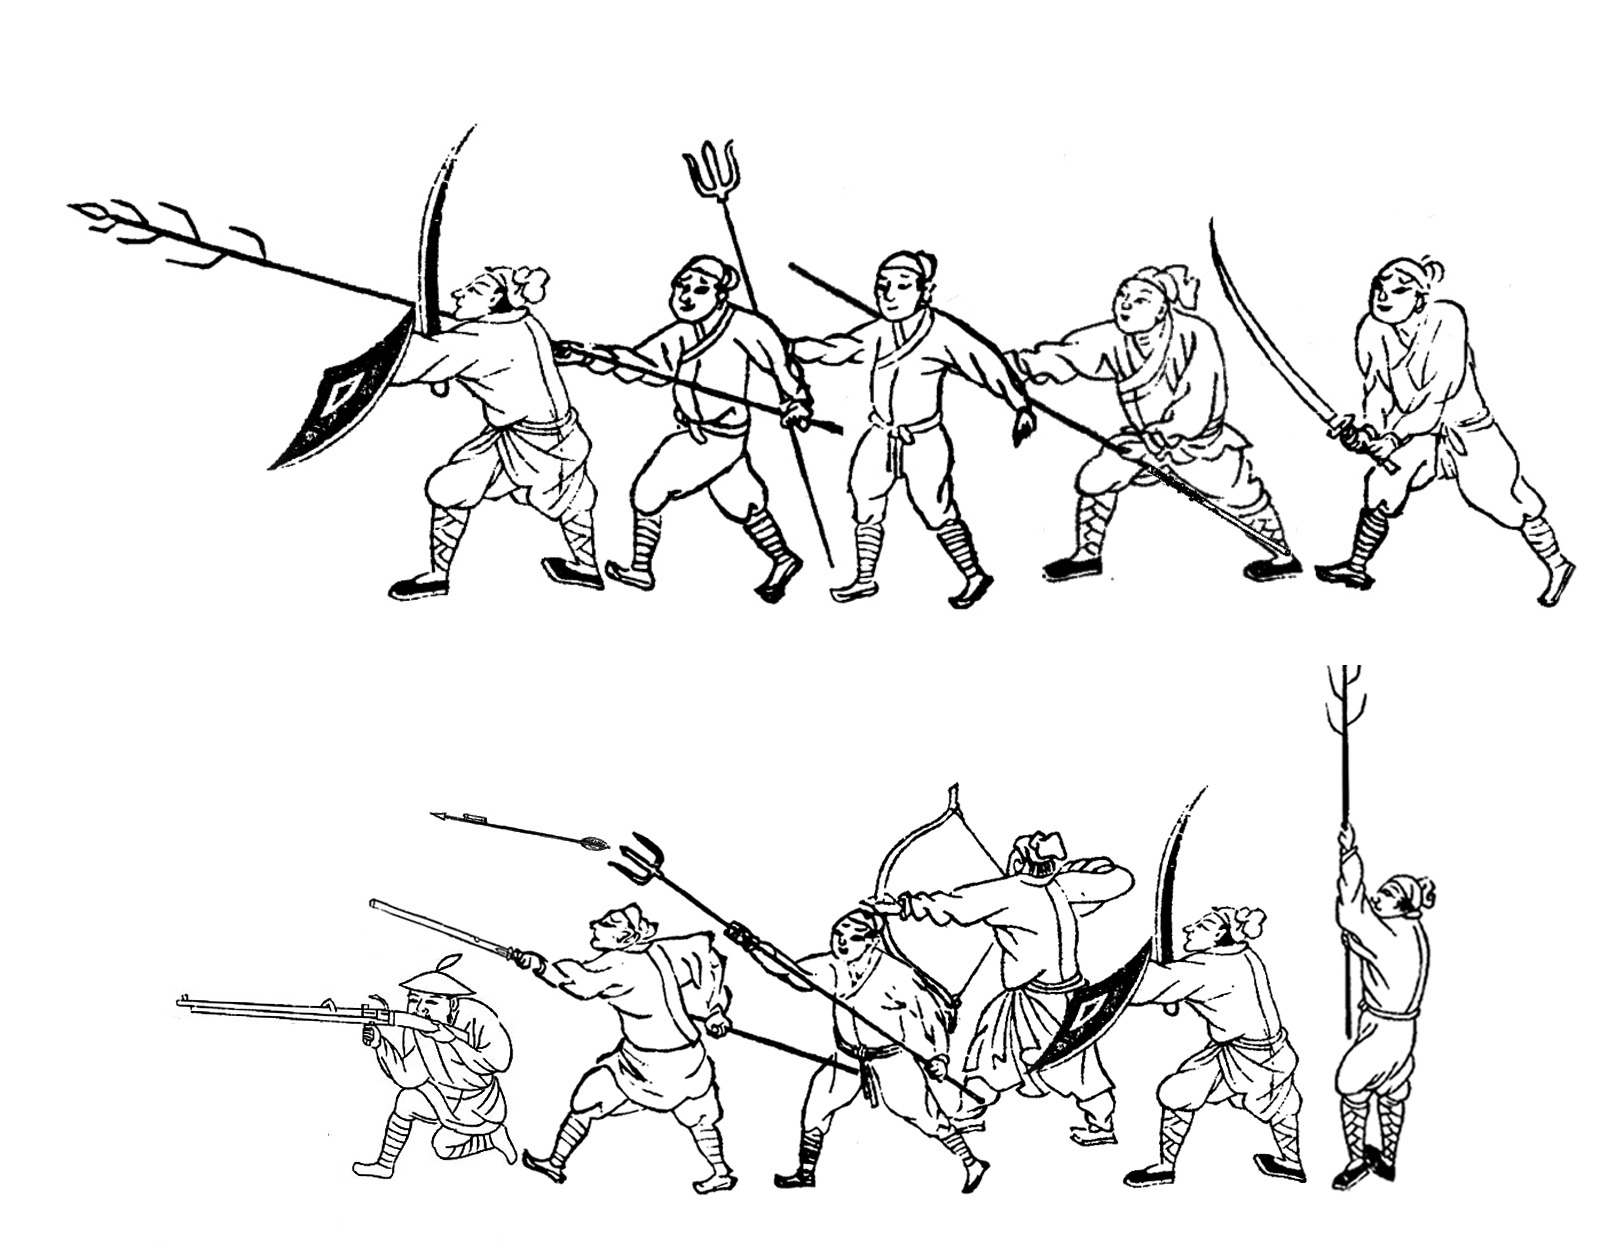 Demonstration of tridents vs. pikes in medieval East Asian